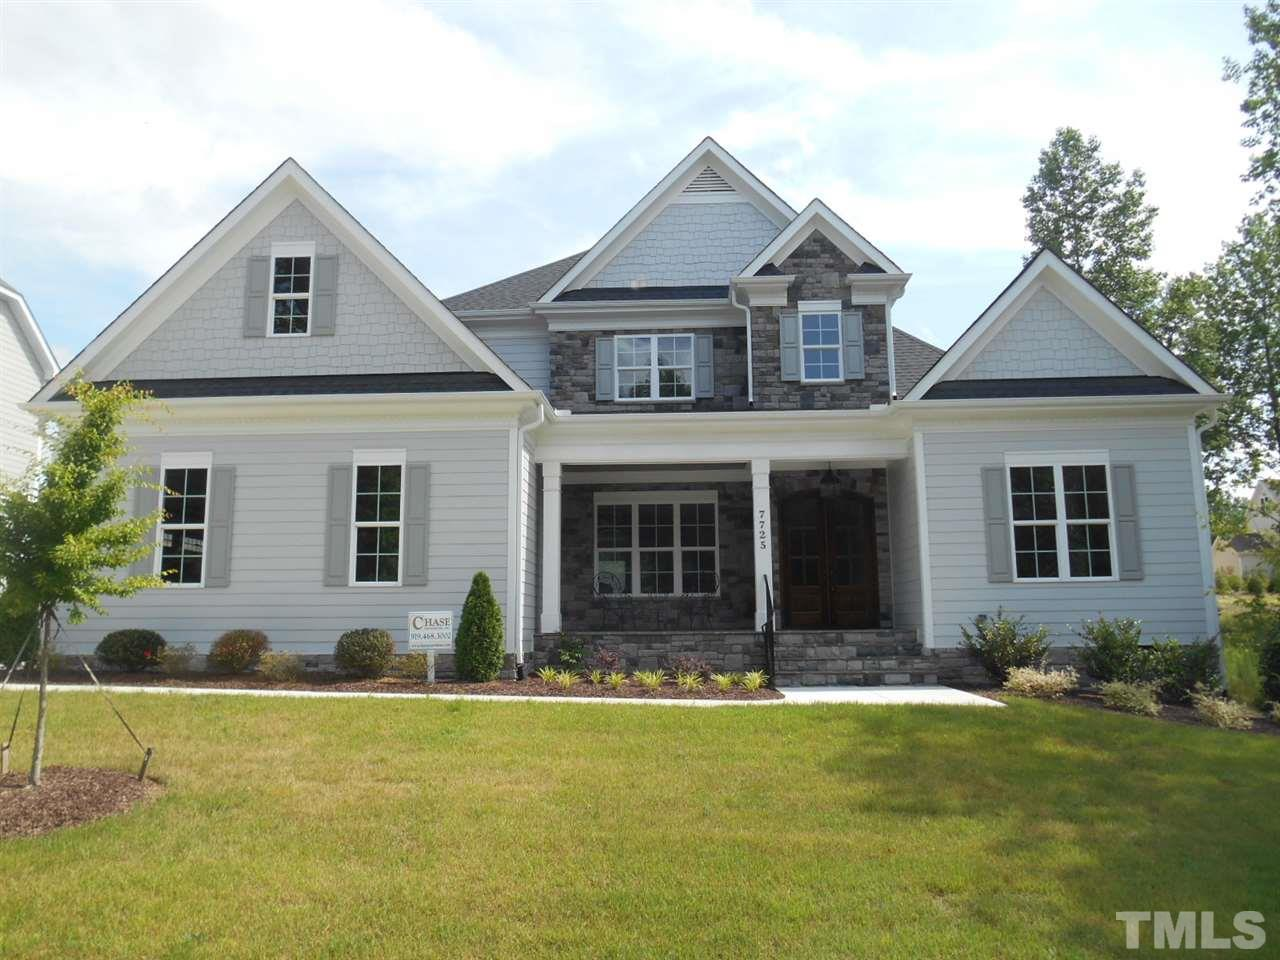 Cary first floor master bedroom homes for sale - 2 master bedroom houses for sale ...